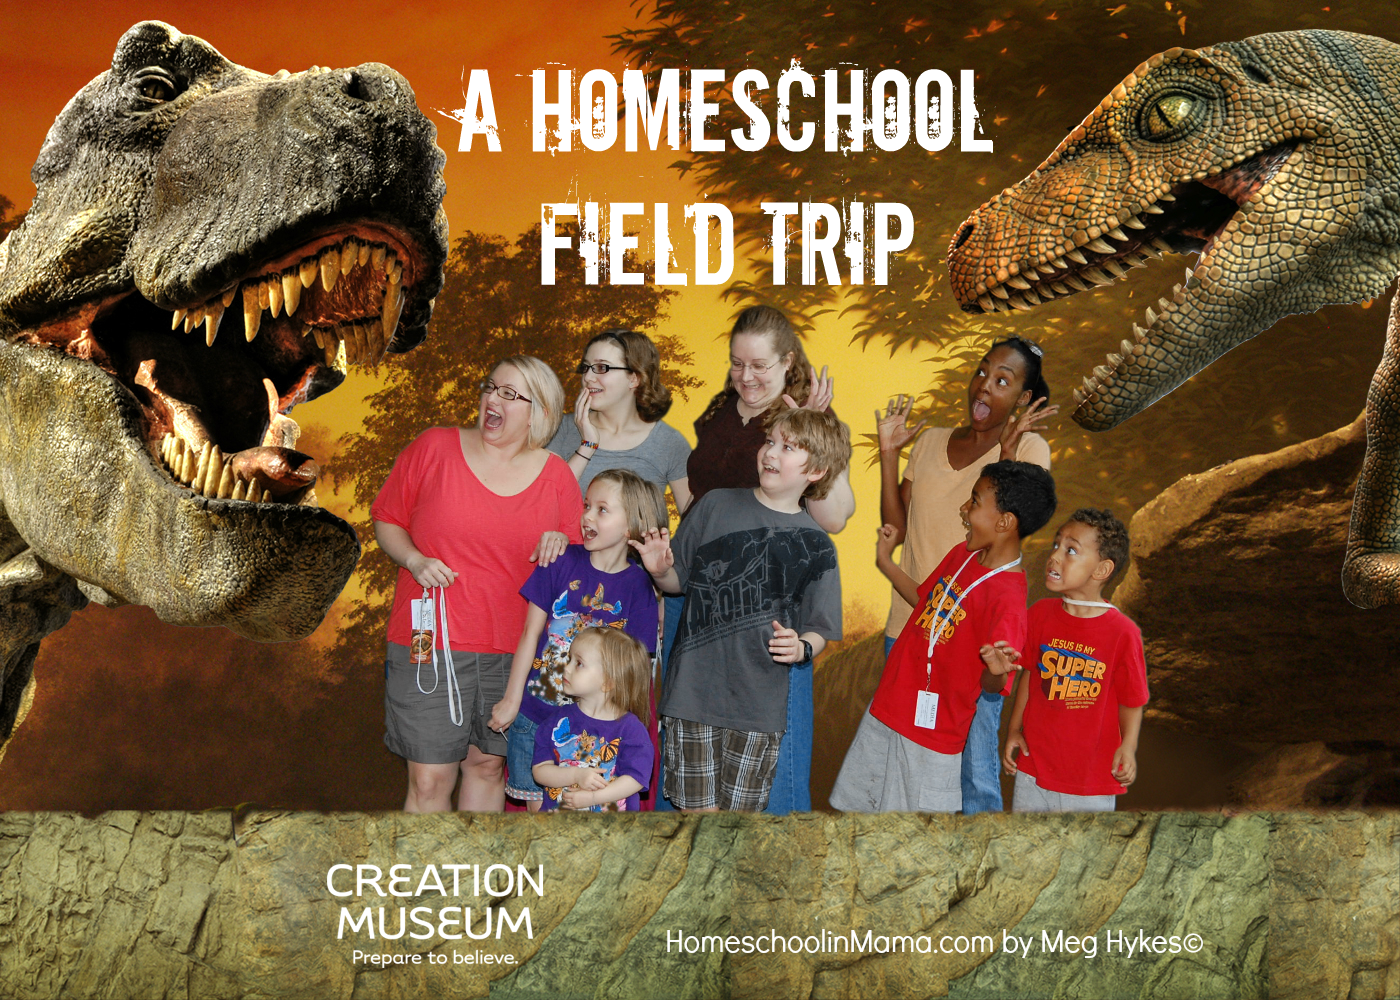 Our Homeschool Field Trip – The Creation Museum